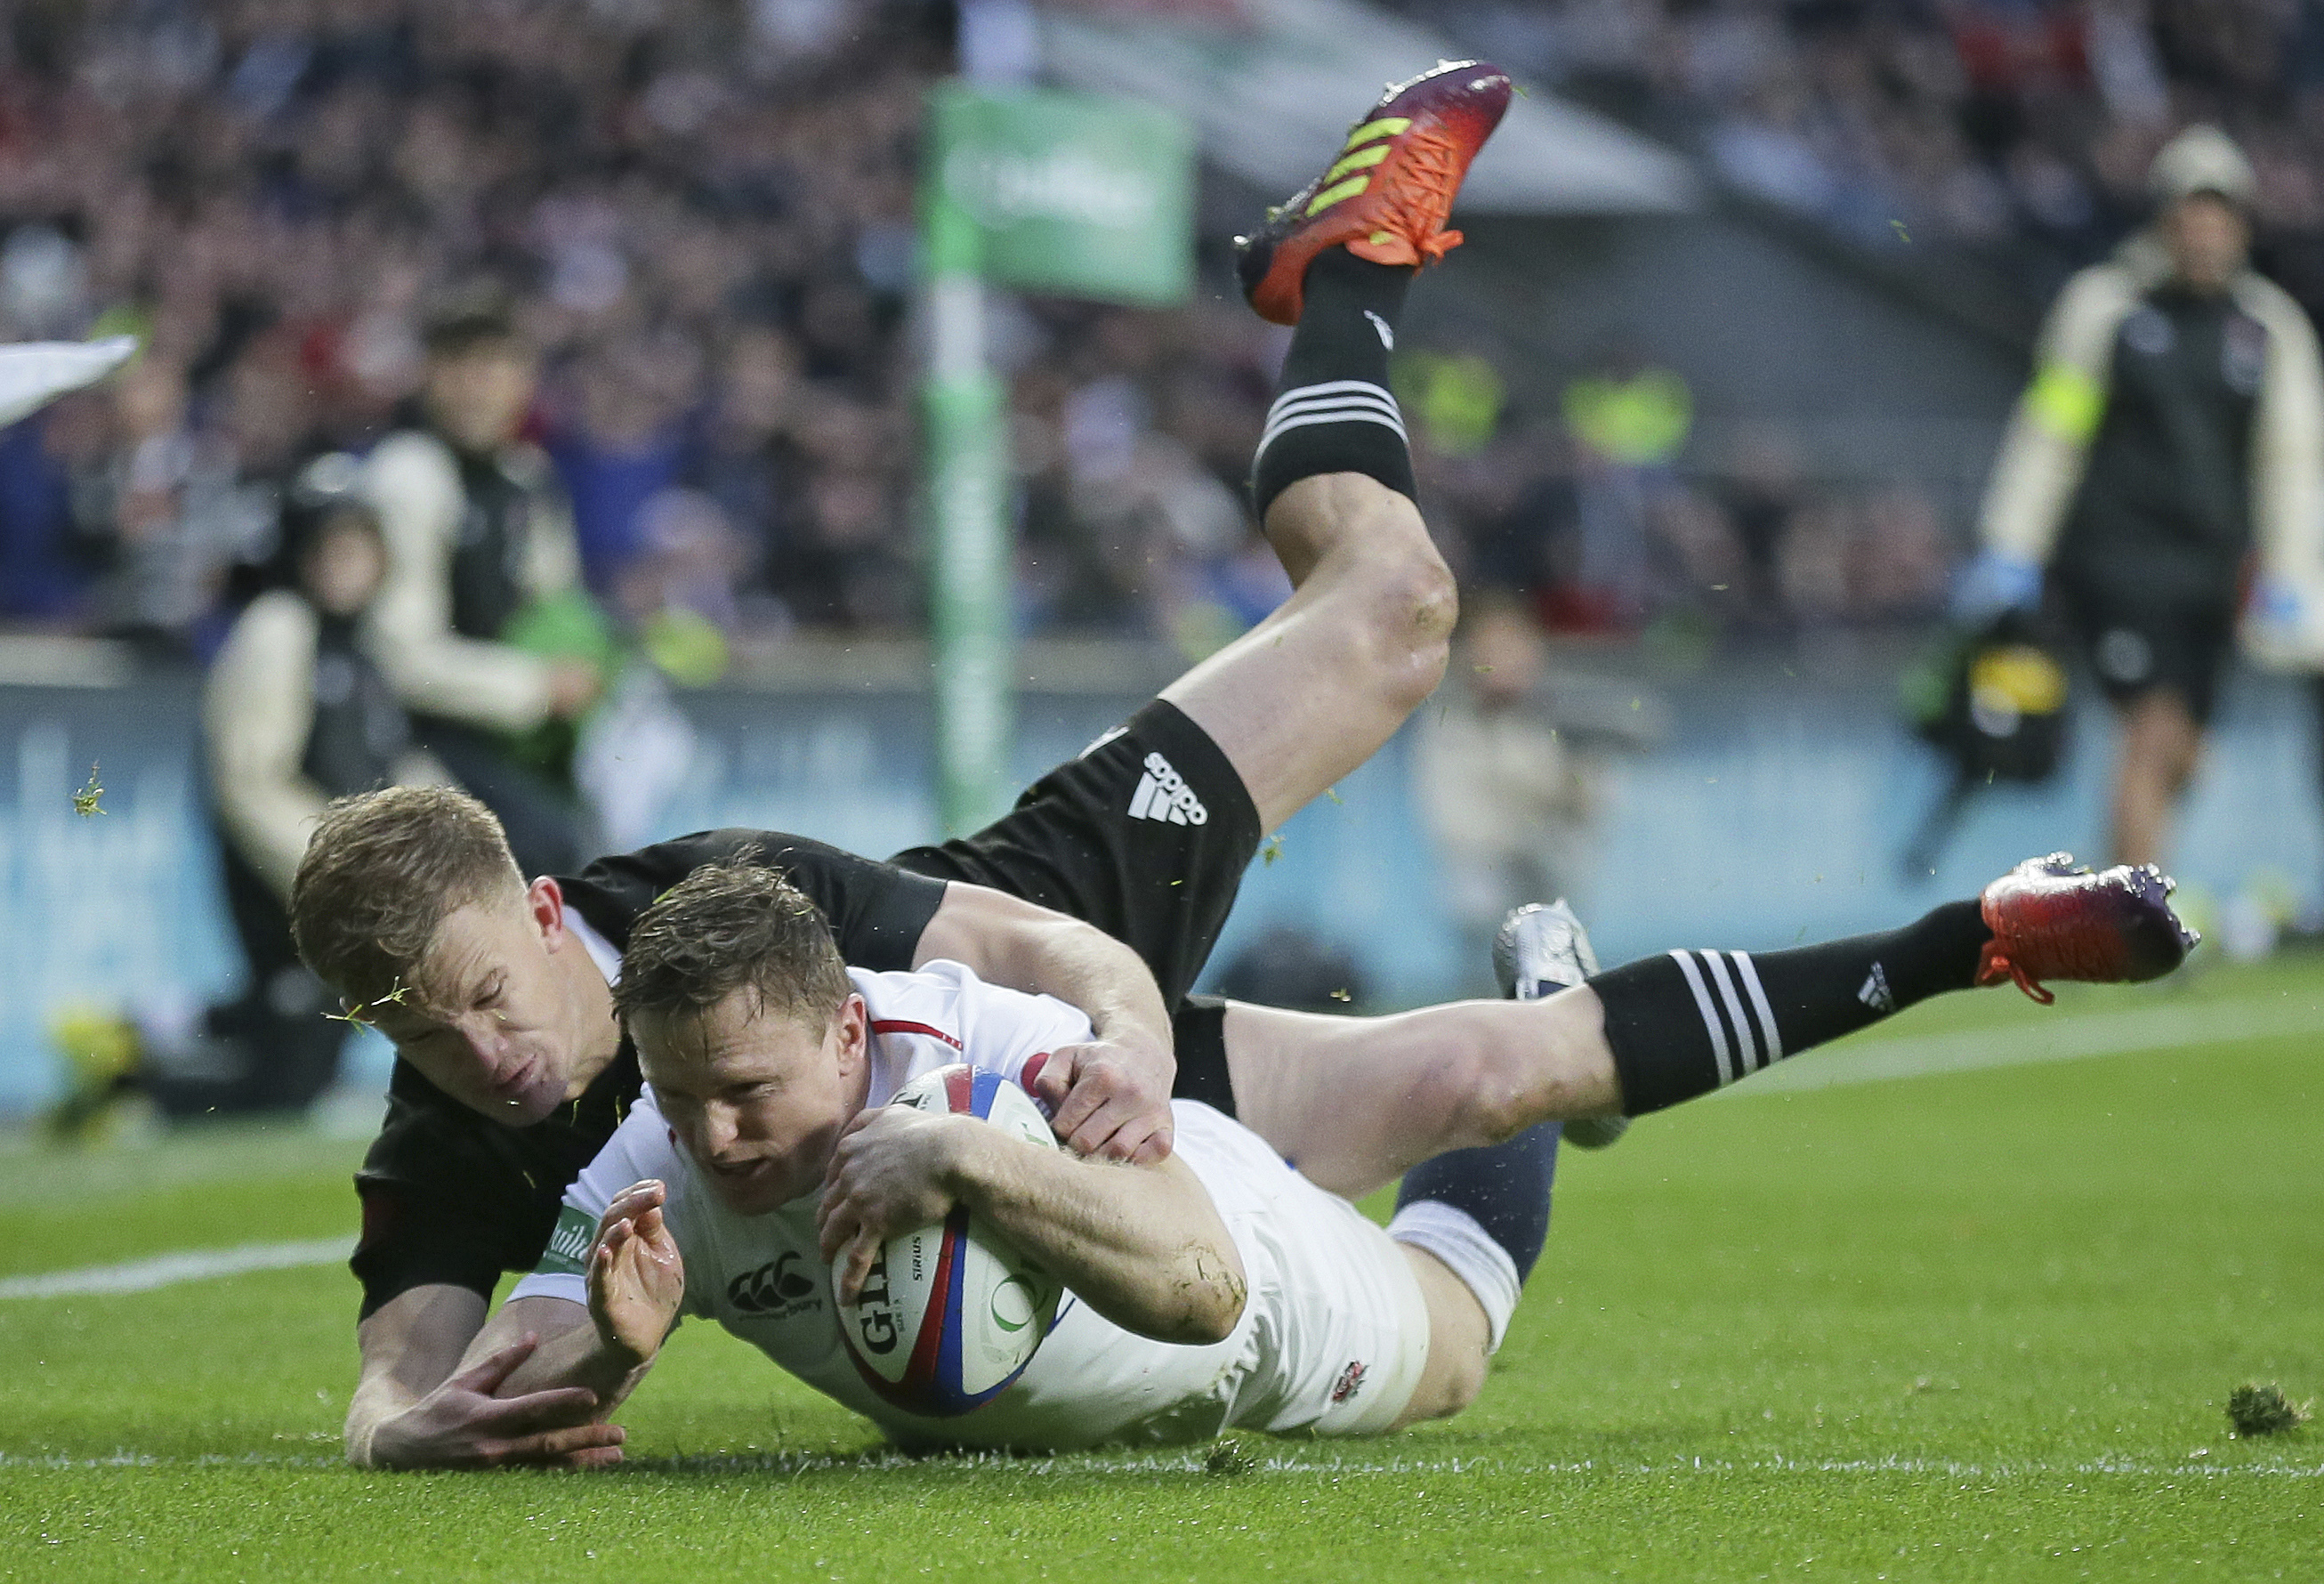 Chris Ashton returns to the England starting XV with a try after two minutes. Image: PA Images